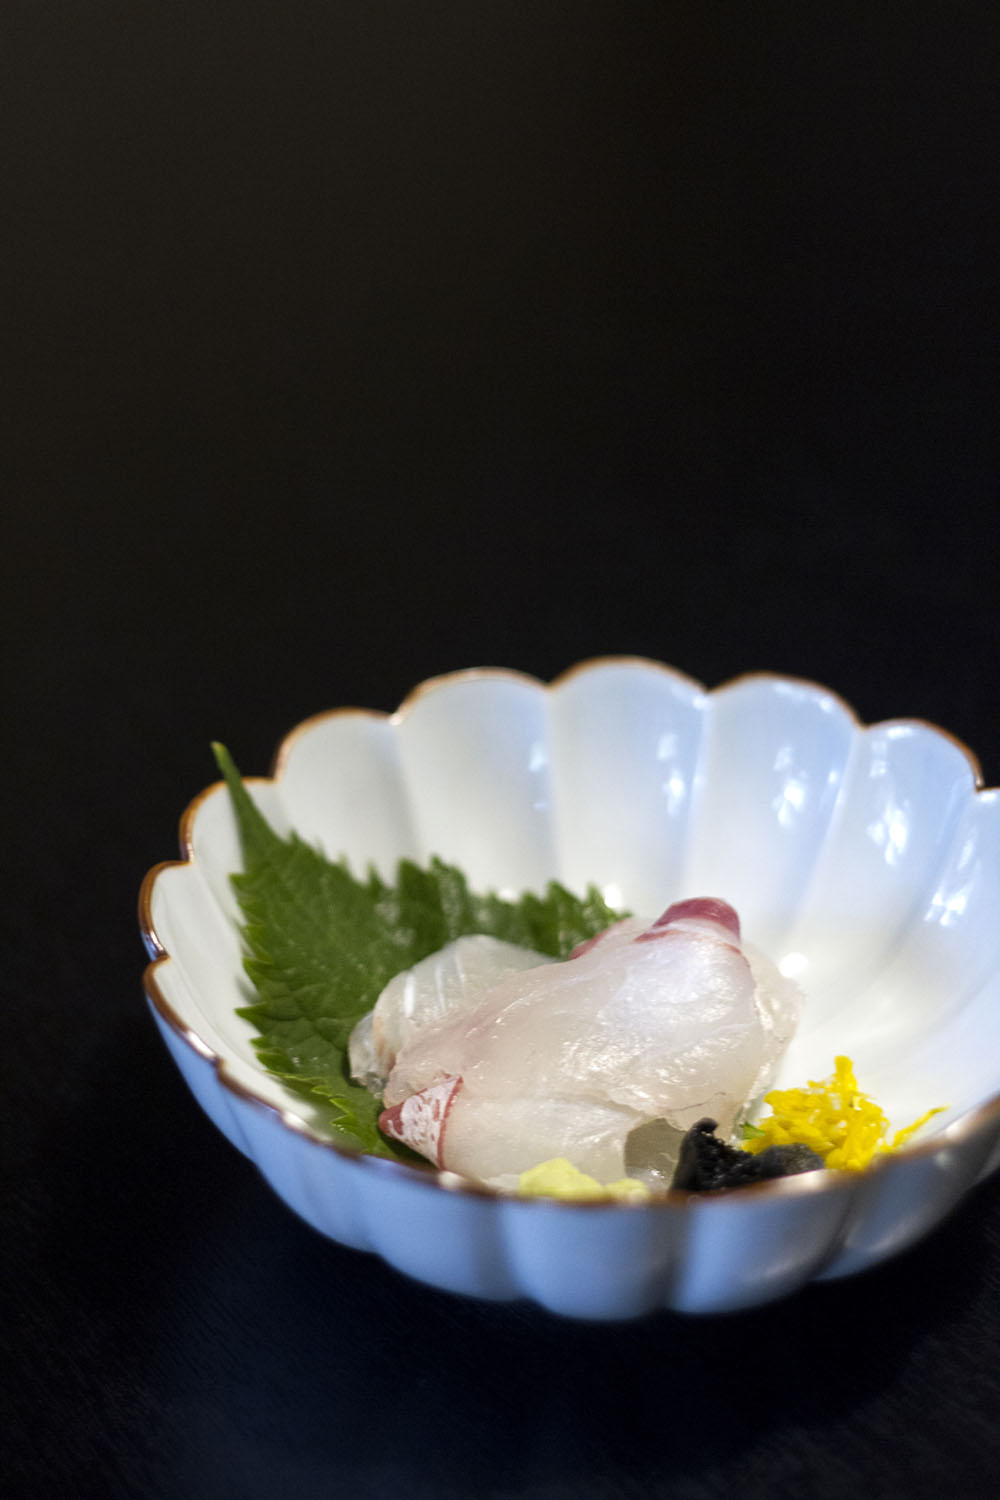 Kaiseki at Hyotei, Kyoto